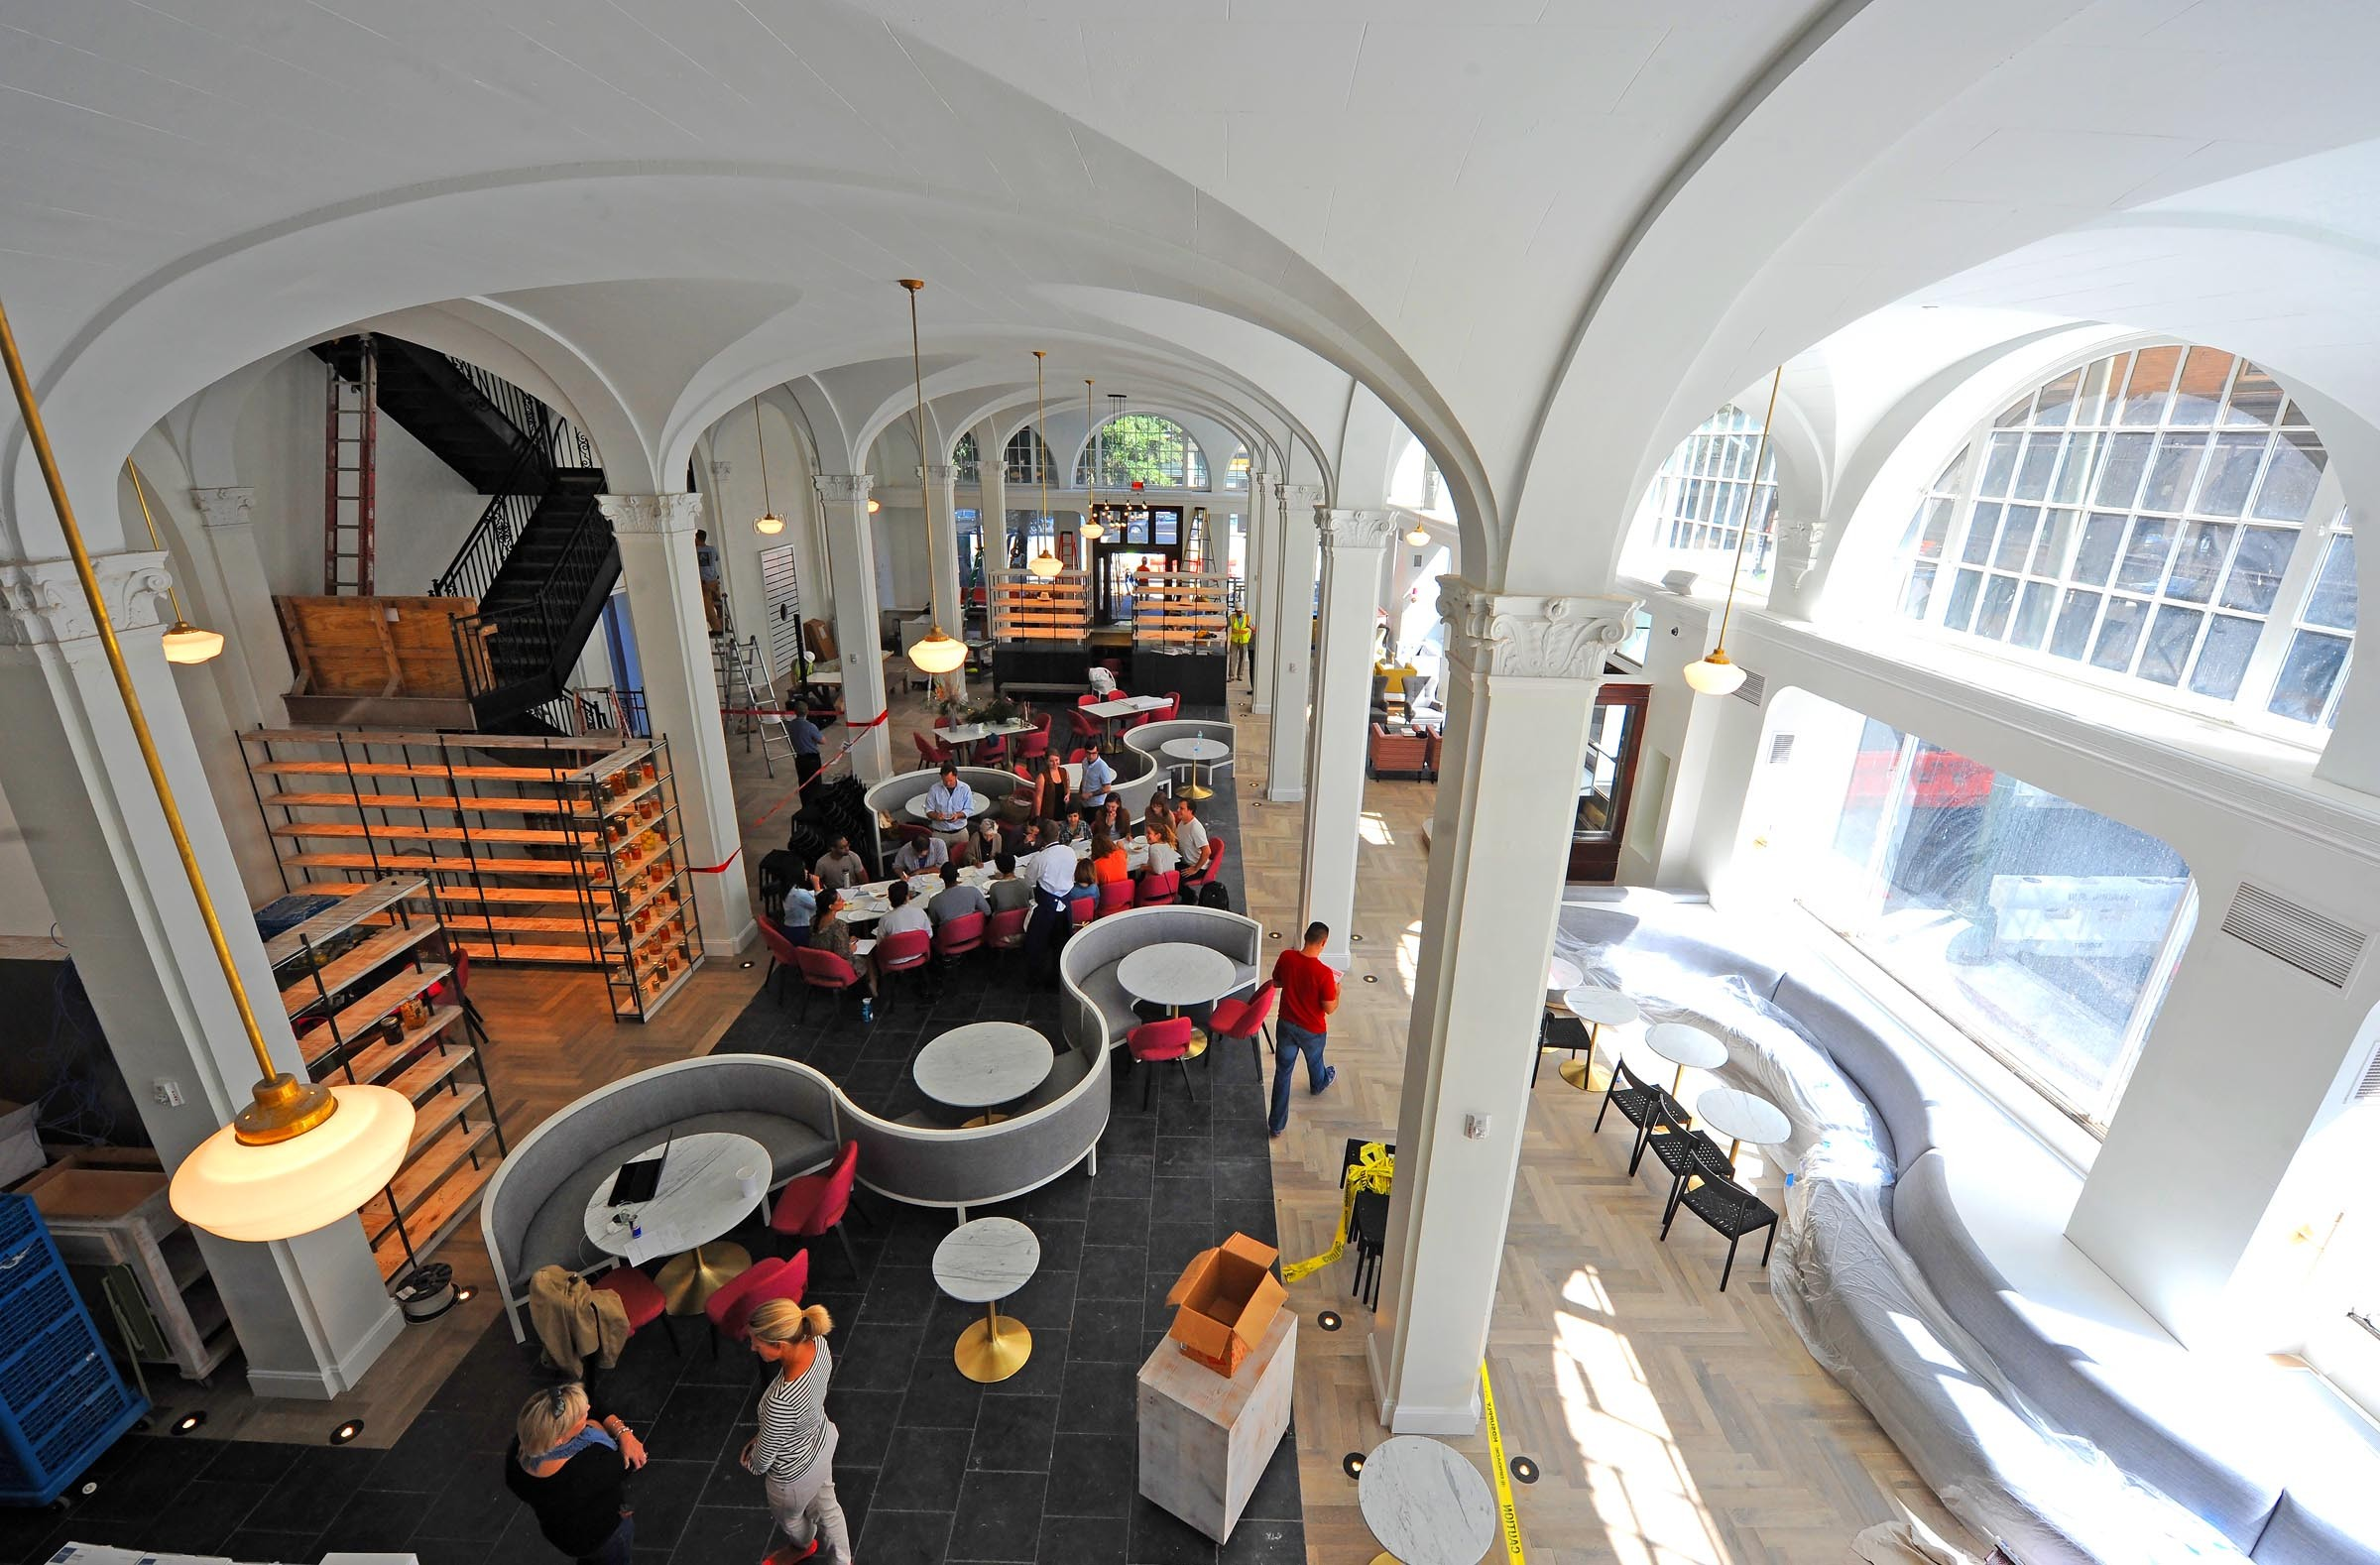 Architecture Review: The New Quirk Hotel And Gallery Prove This Isnu0027t Your  Parentsu0027 Downtown Richmond